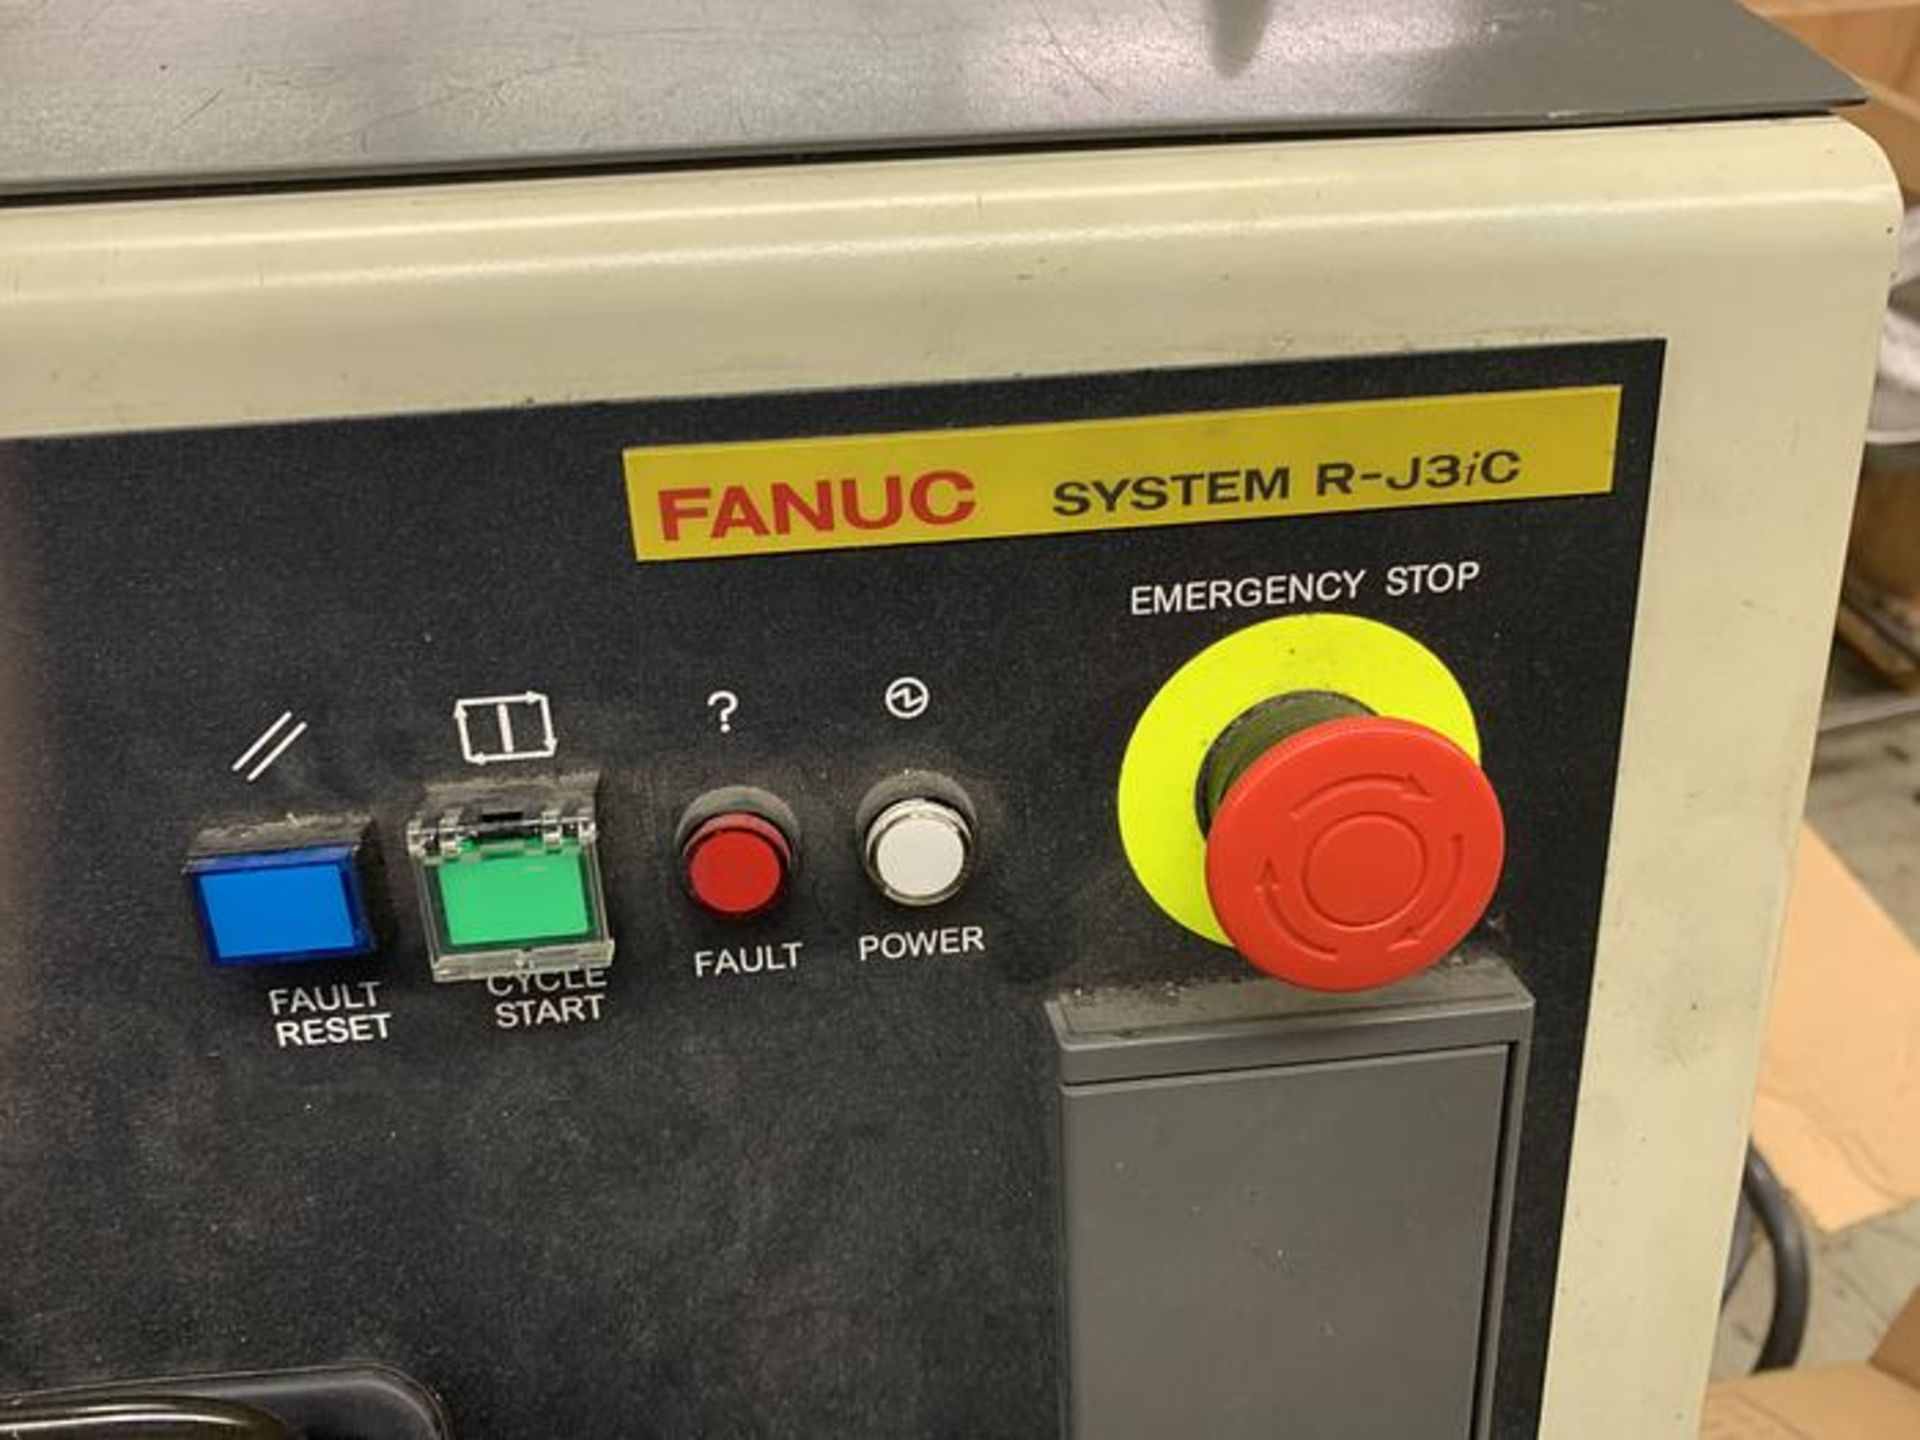 FANUC ROBOT M16iB/10L WITH RJ3iC (R30iA) CONTROLLER, TEACH & CABLES, YEAR 2006, SN 80306 - Image 14 of 17